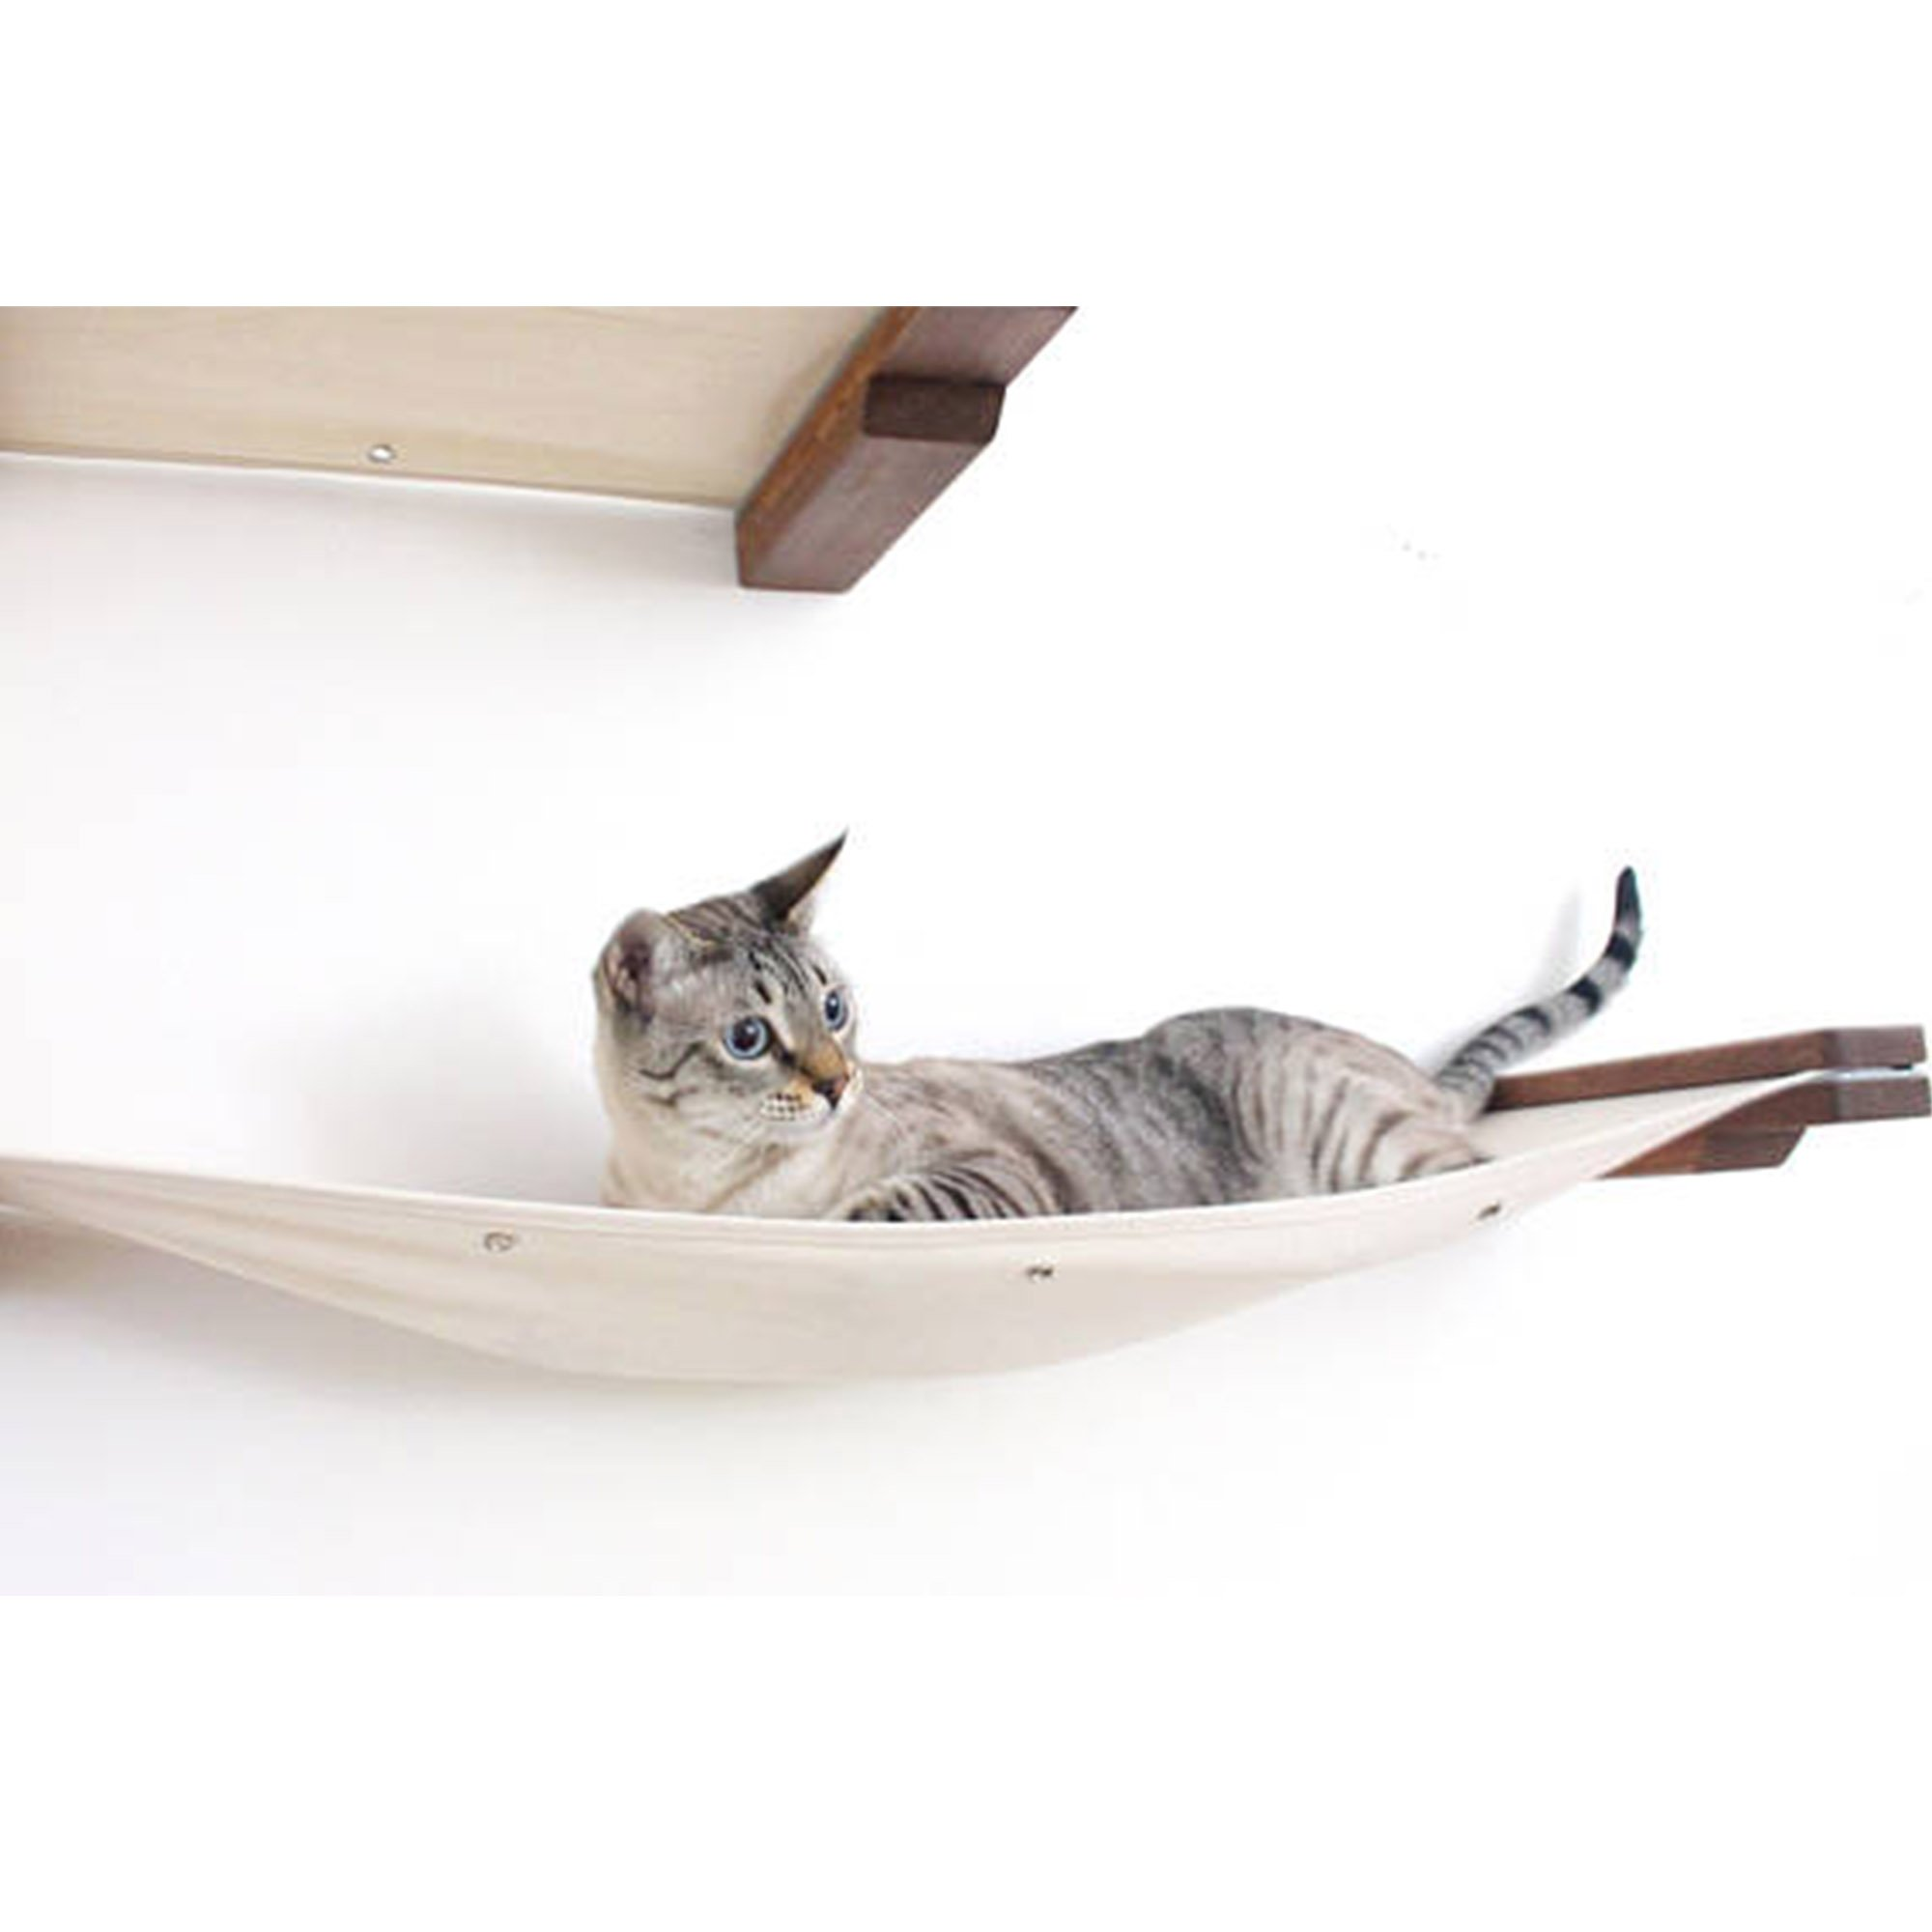 Catastrophicreations The Cat Mod Double Decker Hammocks For Cats In English Chestnut, 35.5 In W X 15.5 In H, 8 Lb